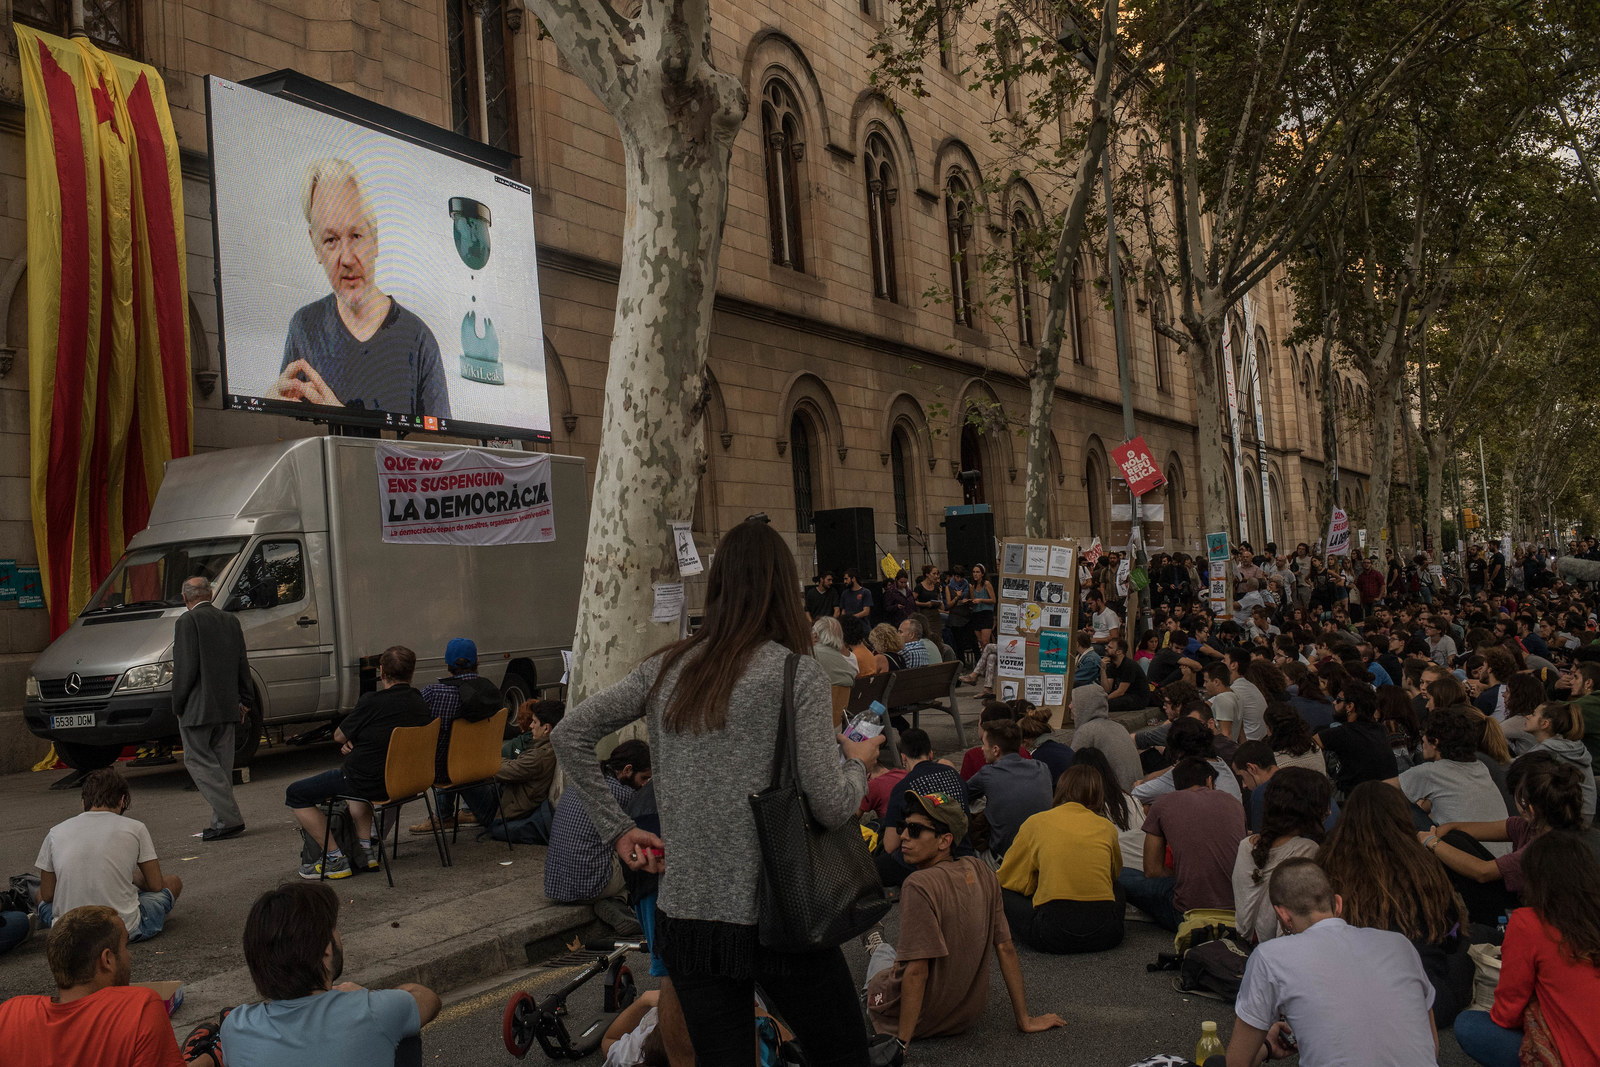 Julian Assange holding a video conference with Catalan students outside the University of Barcelona on Sept. 26, 2017.